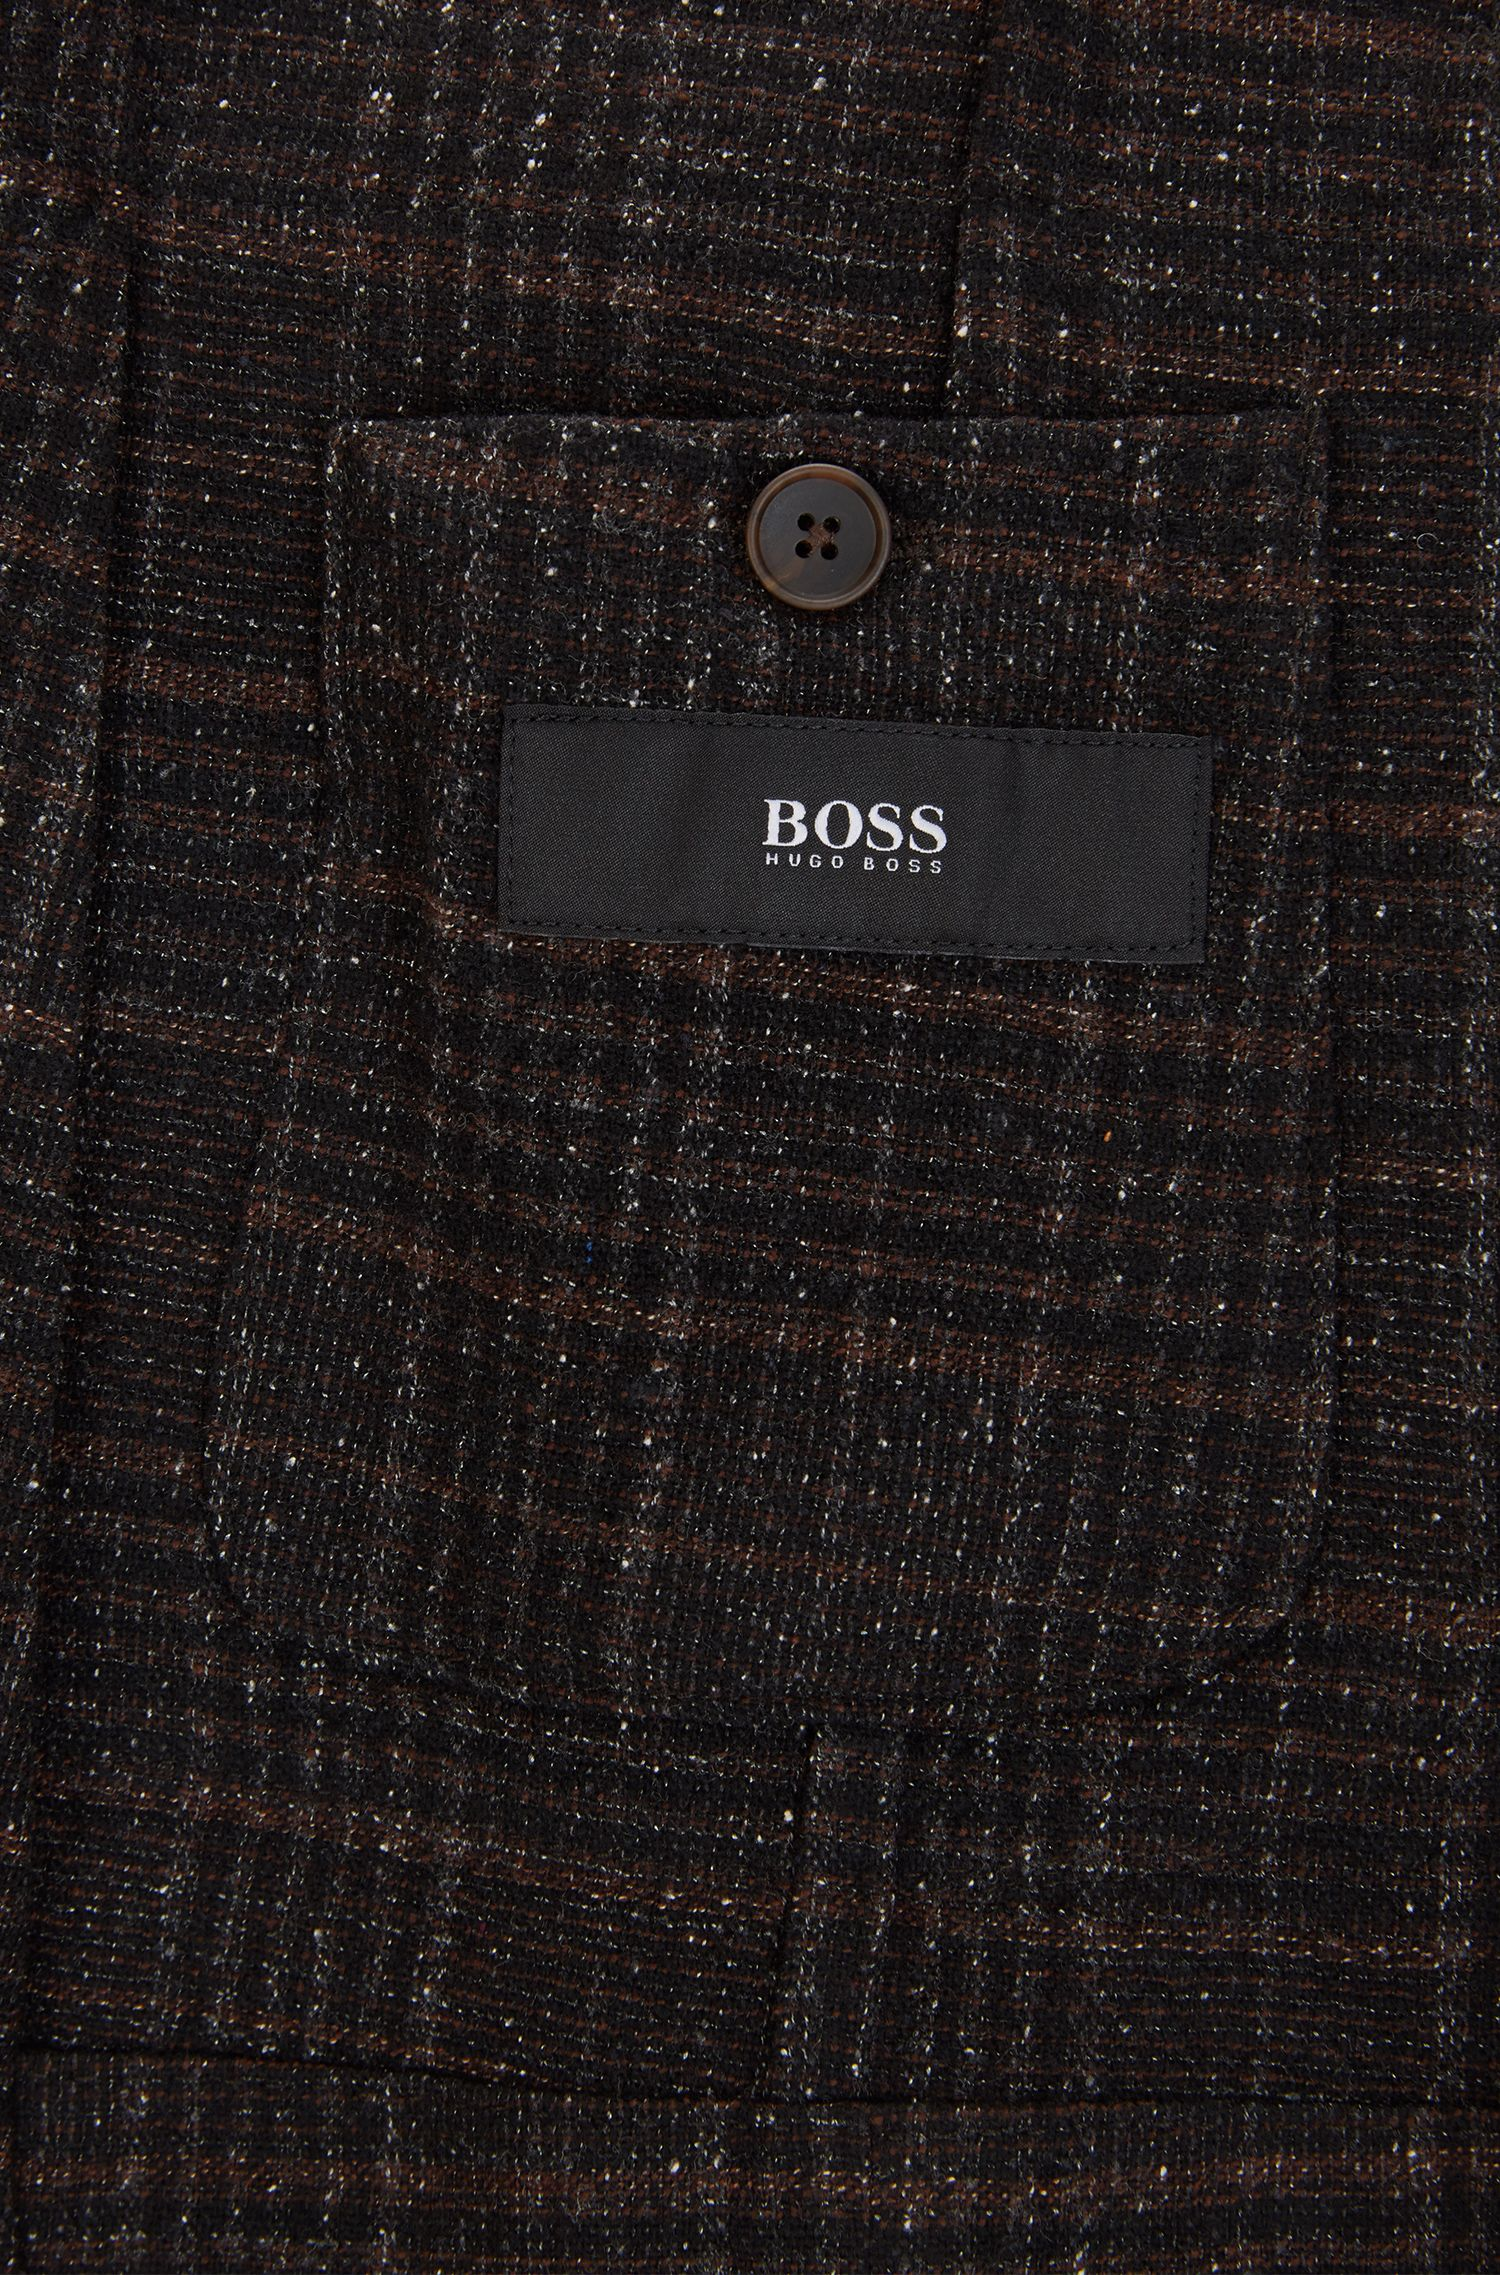 Plaid Wool Blend Sport Coat, Slim Fit | Nold